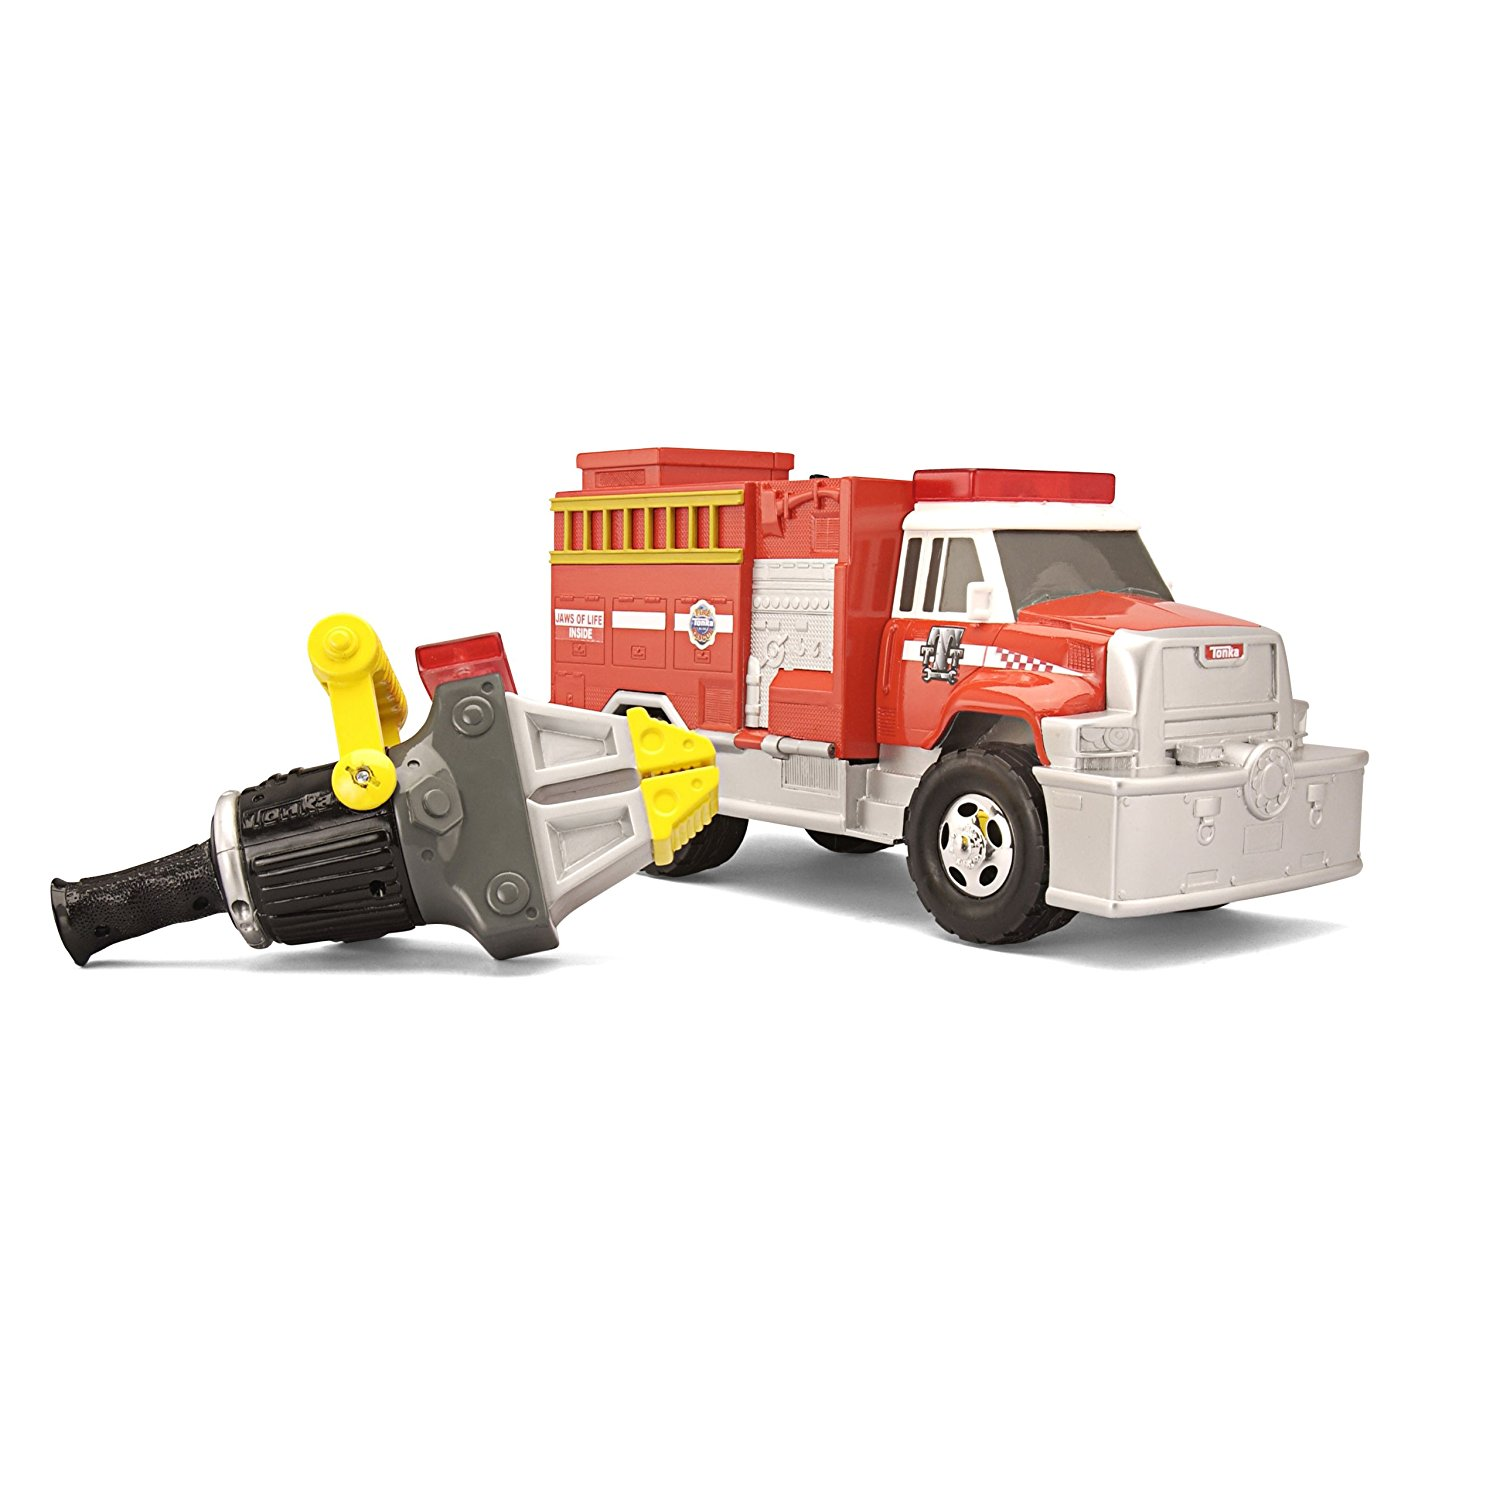 Tonka Tool Truck Fire Truck with Jaws of Life